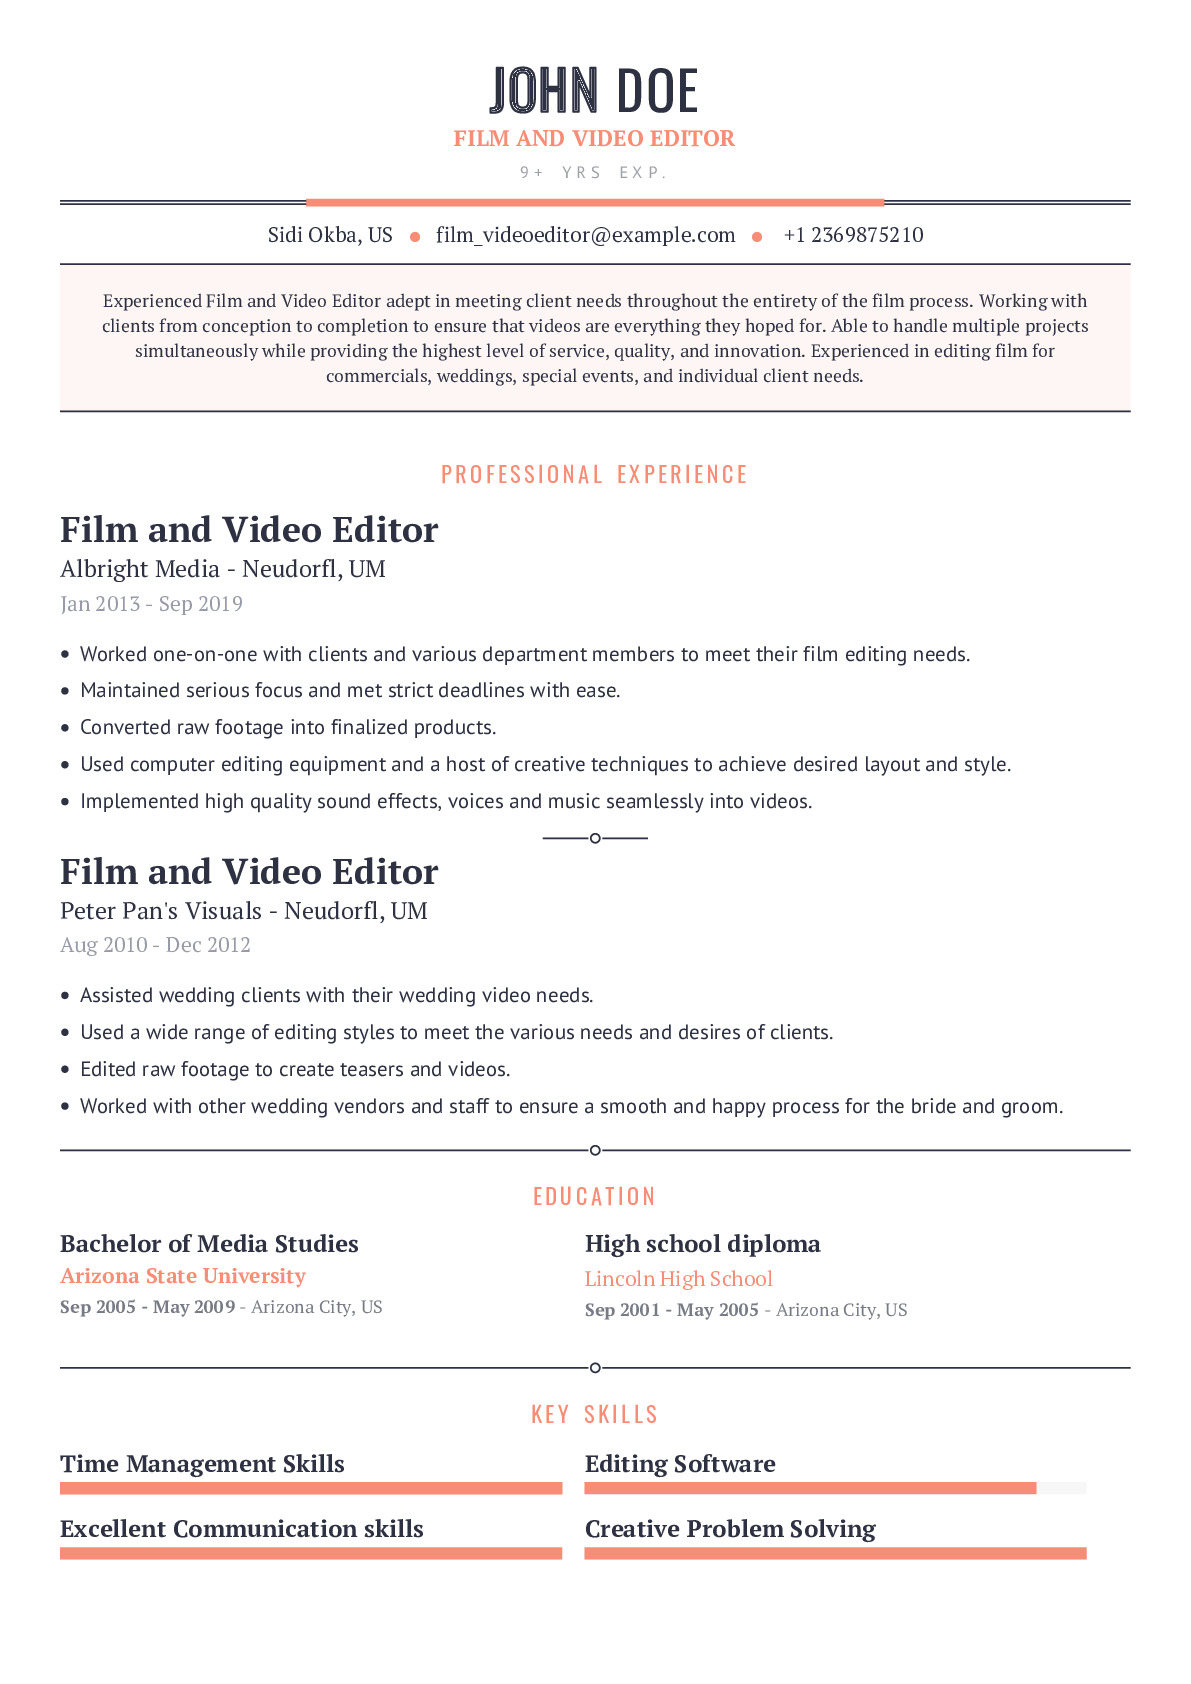 Film and Video Editor Resume Example